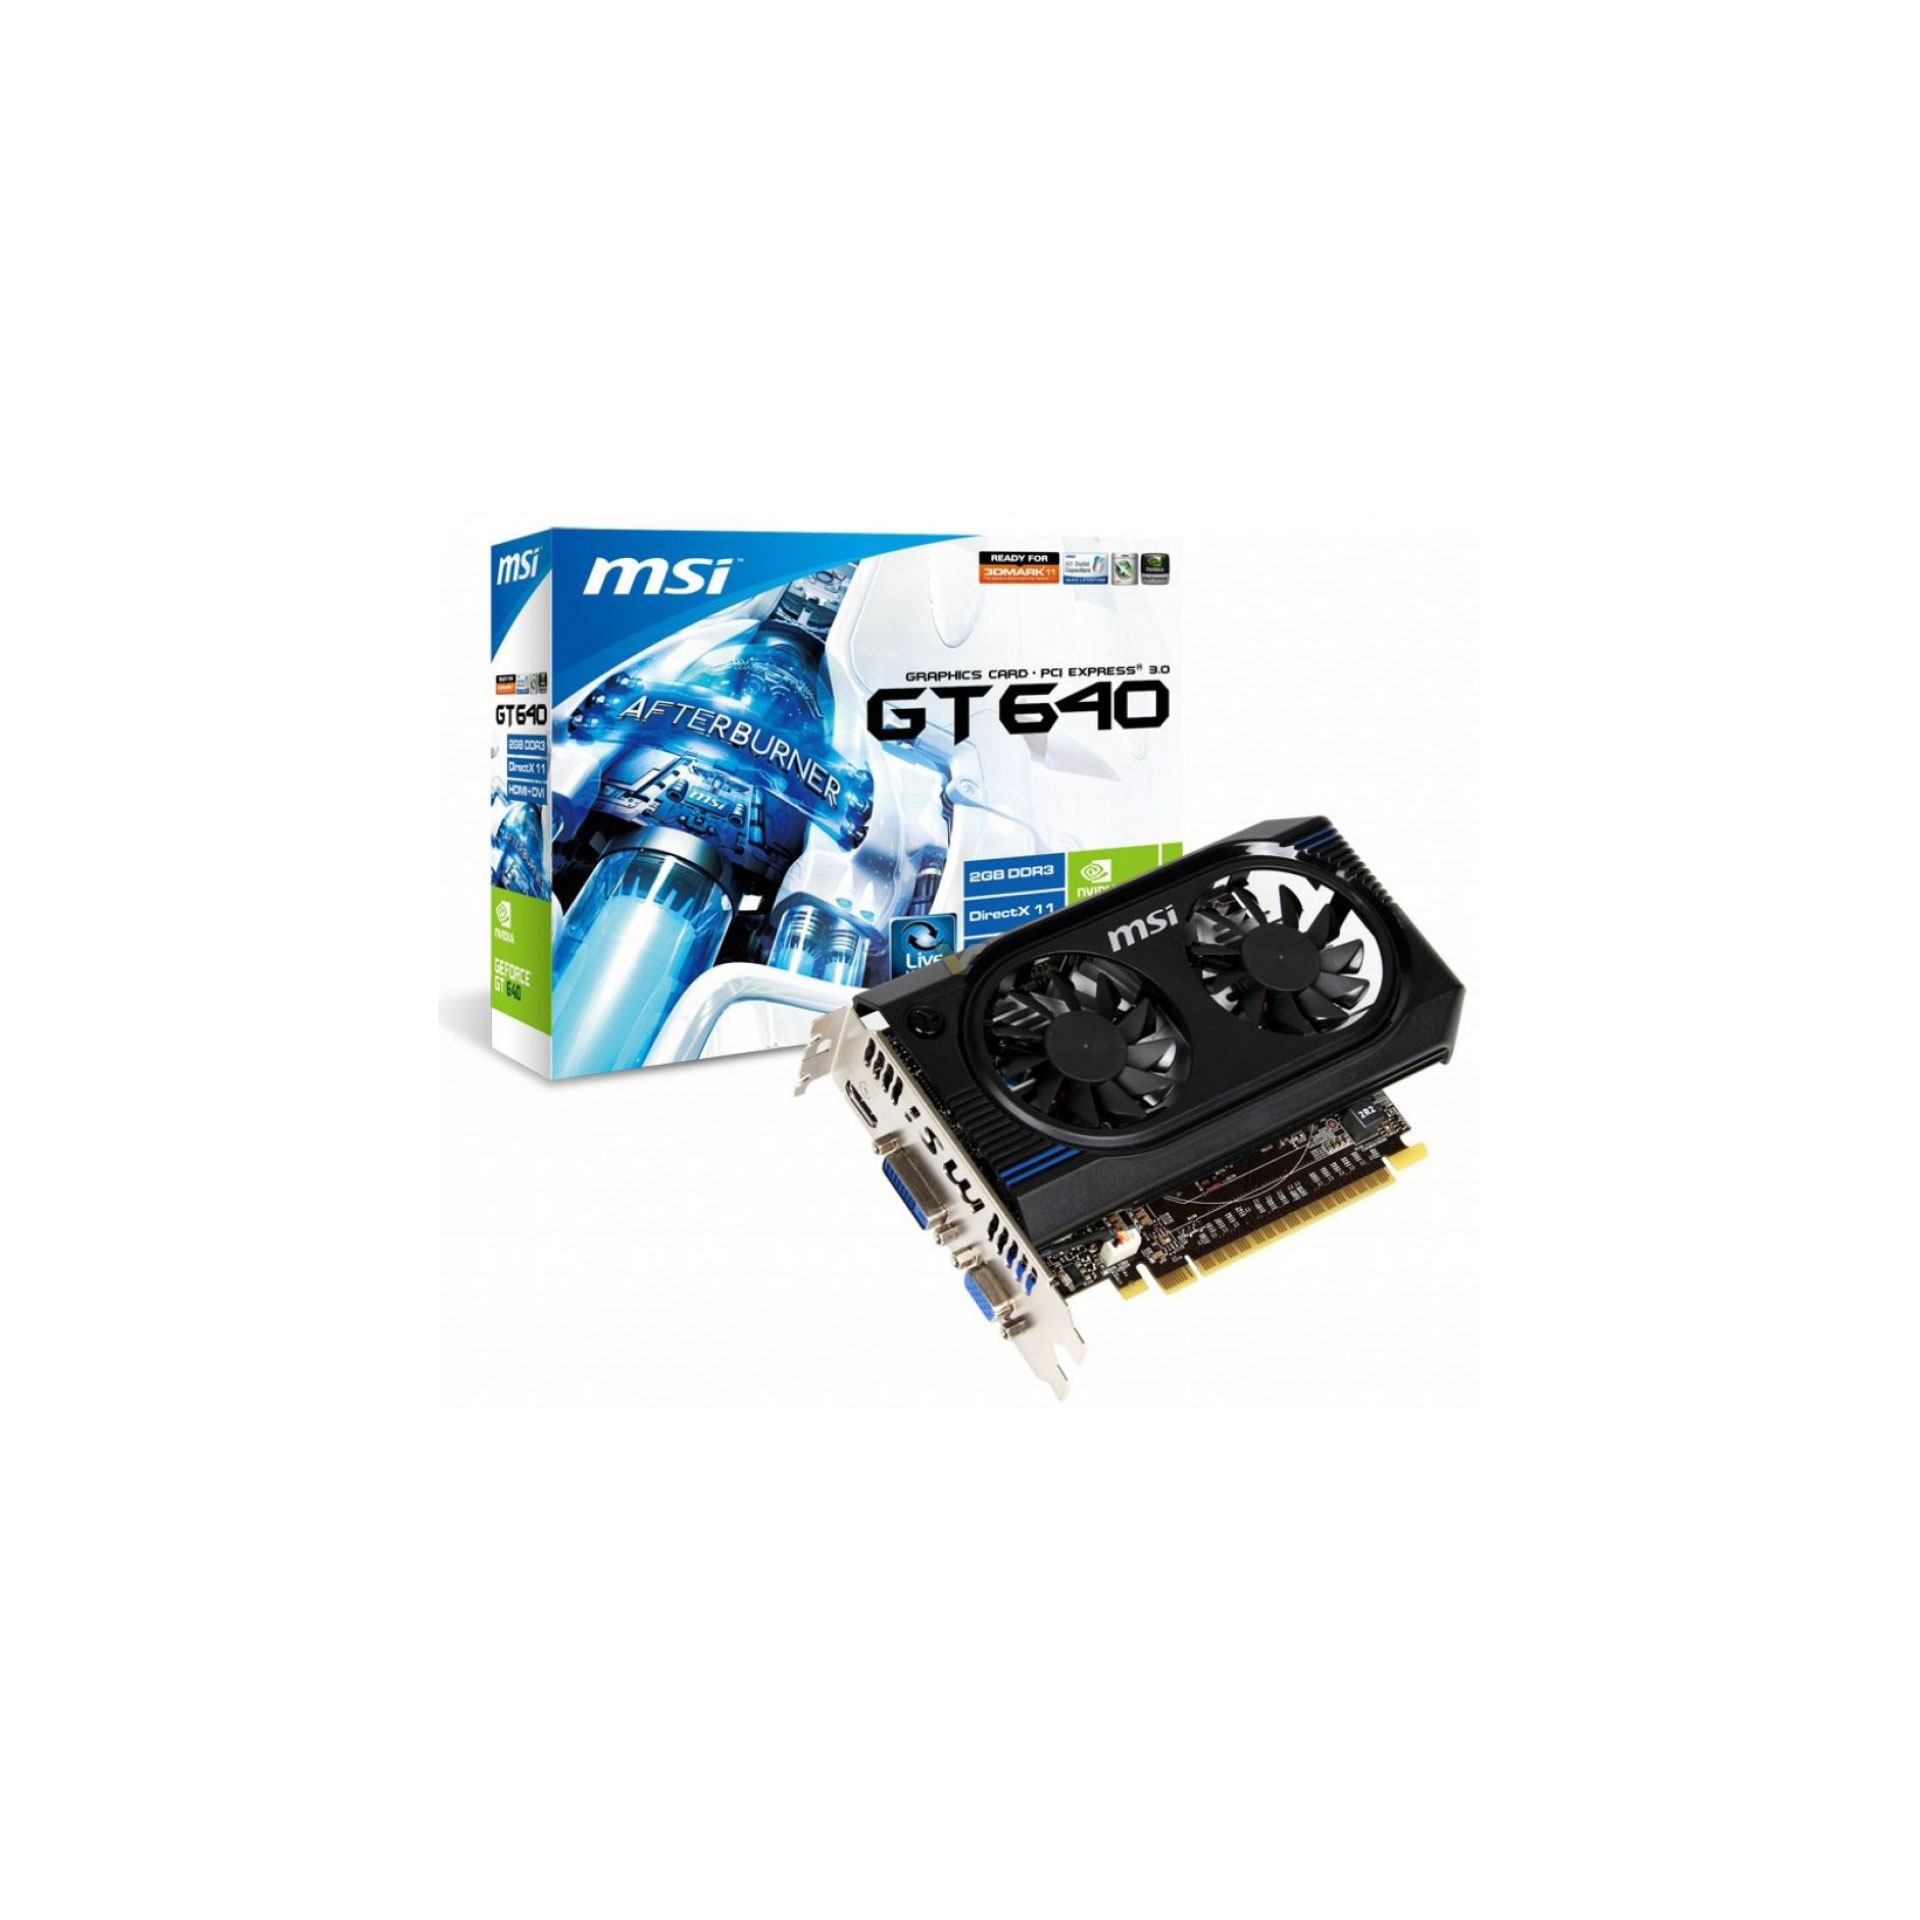 MSI GeForce GT 640 DirectX 11 N640GT-MD2GD3 2GB 128-Bit DDR3 PCI